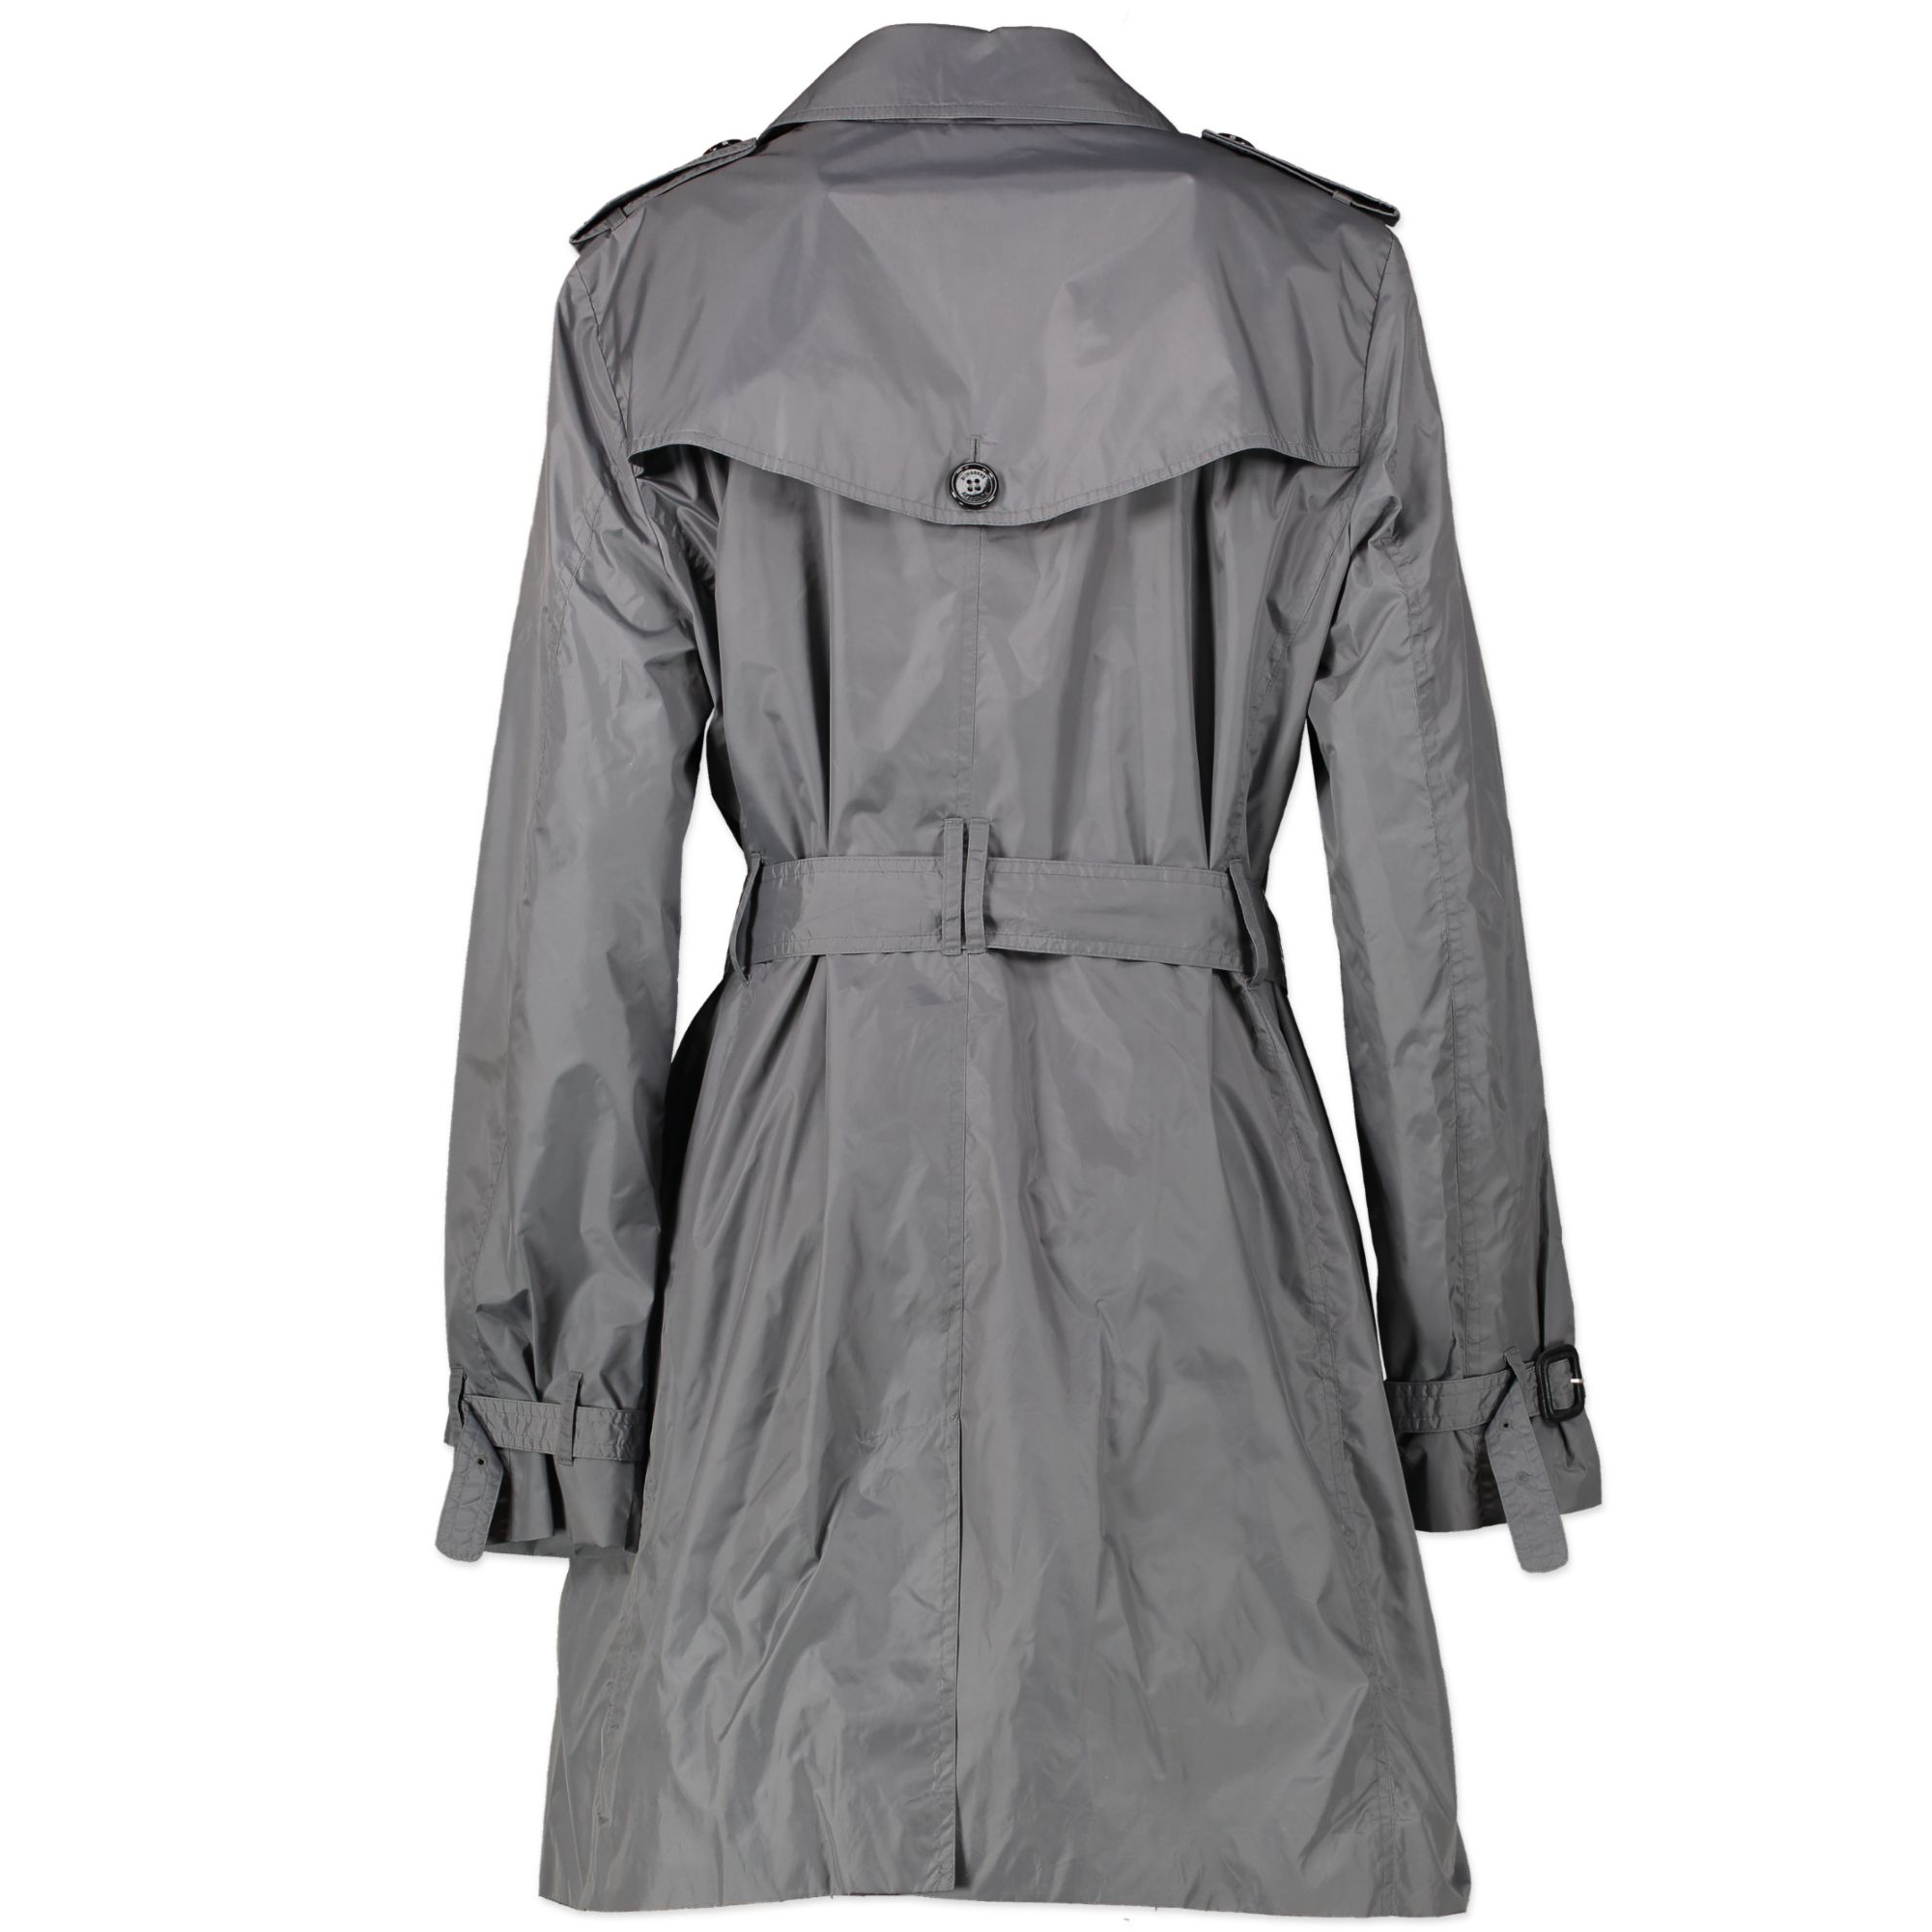 Burberry Grey Nylon Trench - Uk 14 - for the best price at Labellov secondhand vintage webshop Antwerp